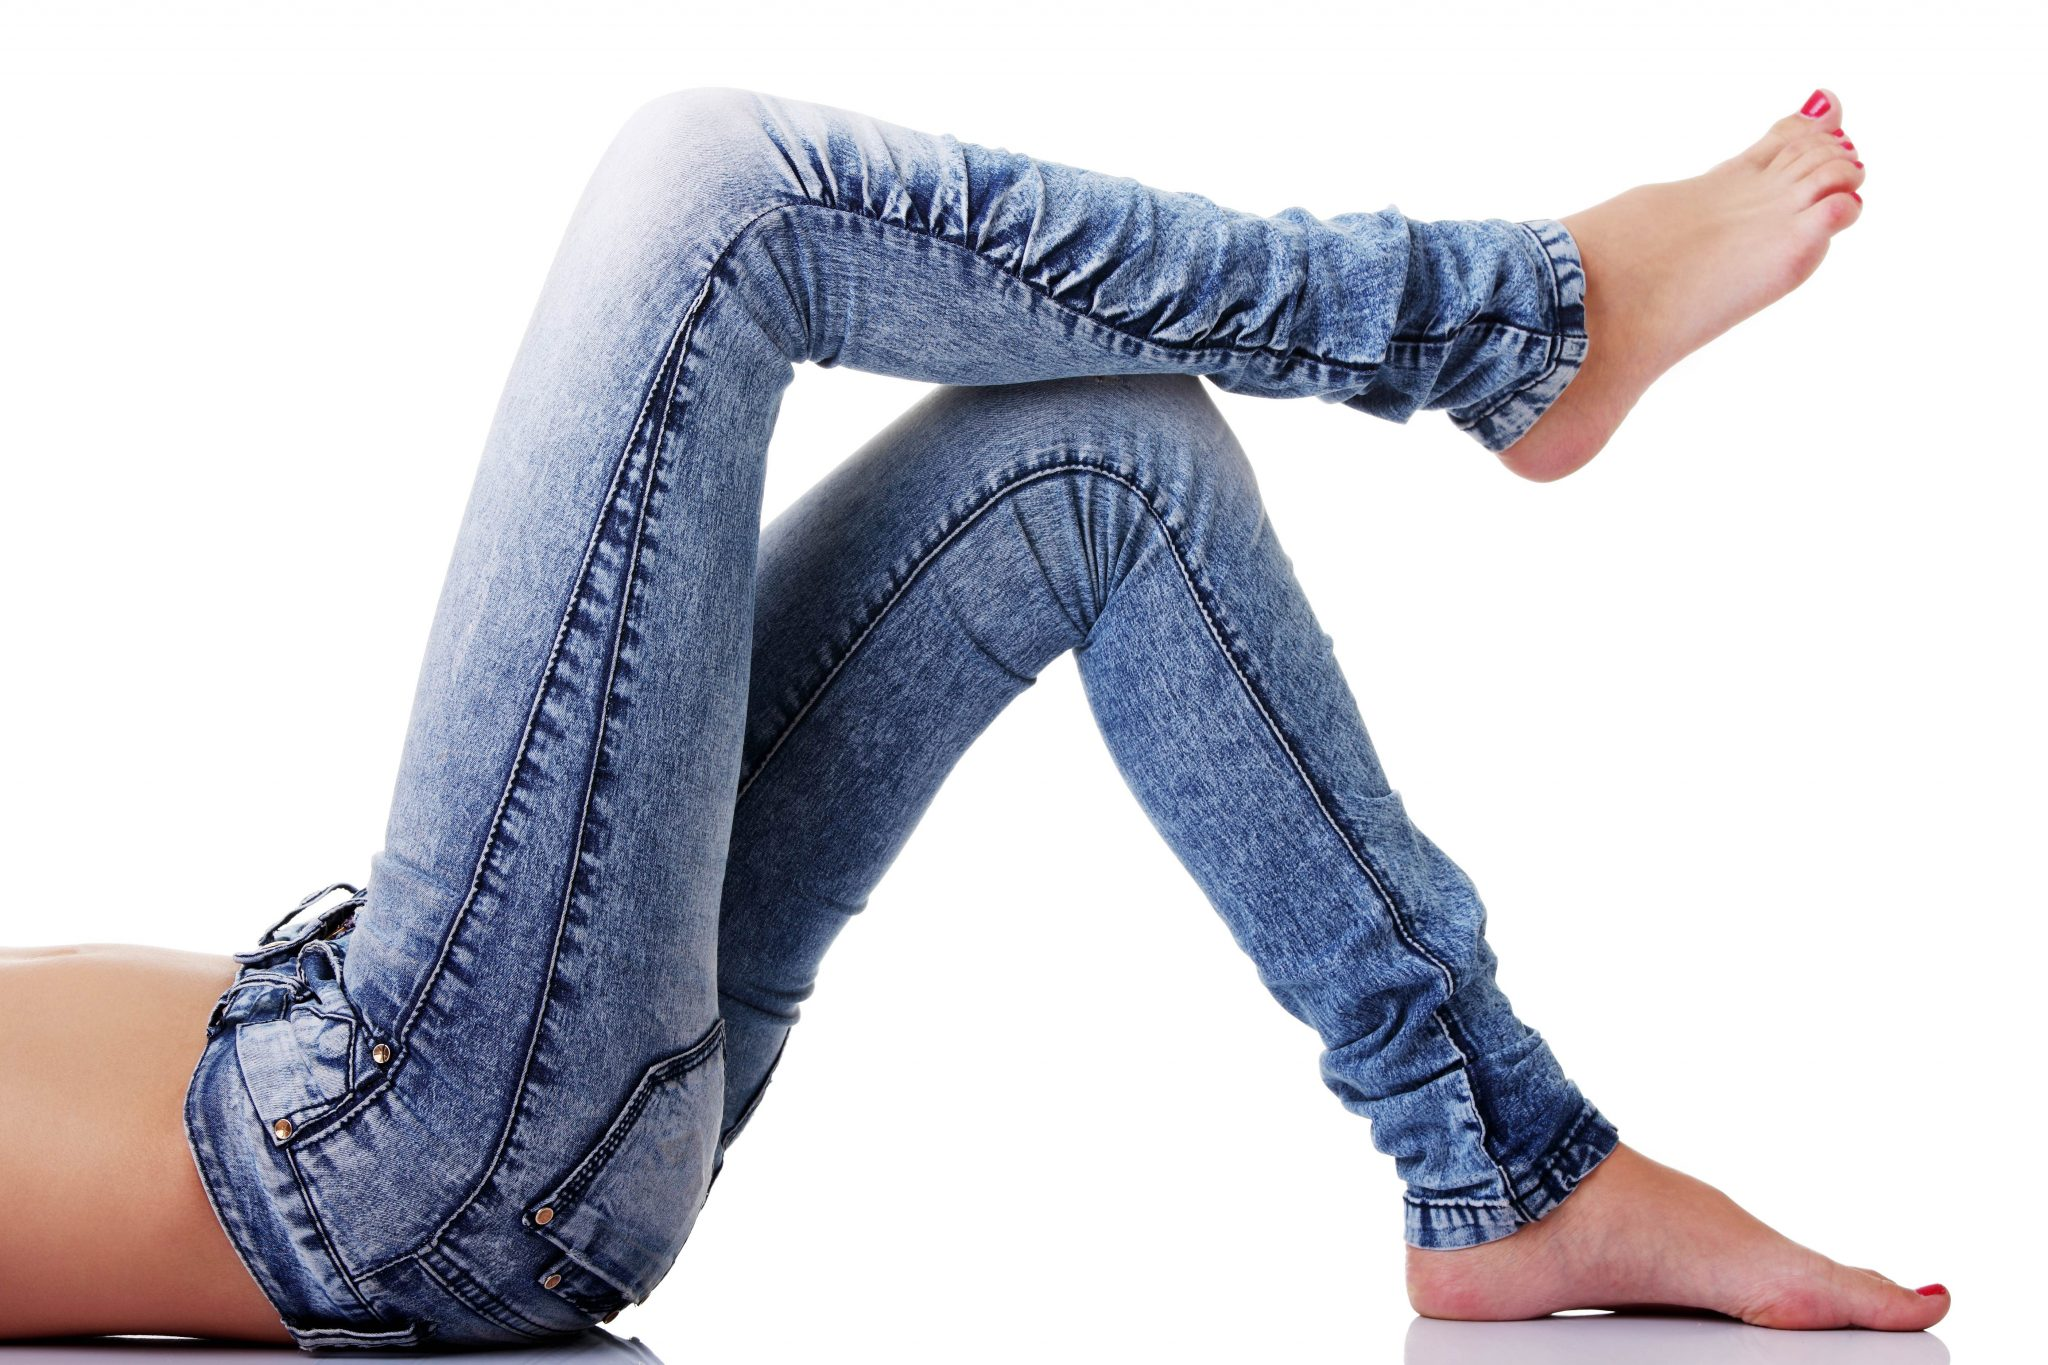 5 Clothes That Can Ruin Your Health